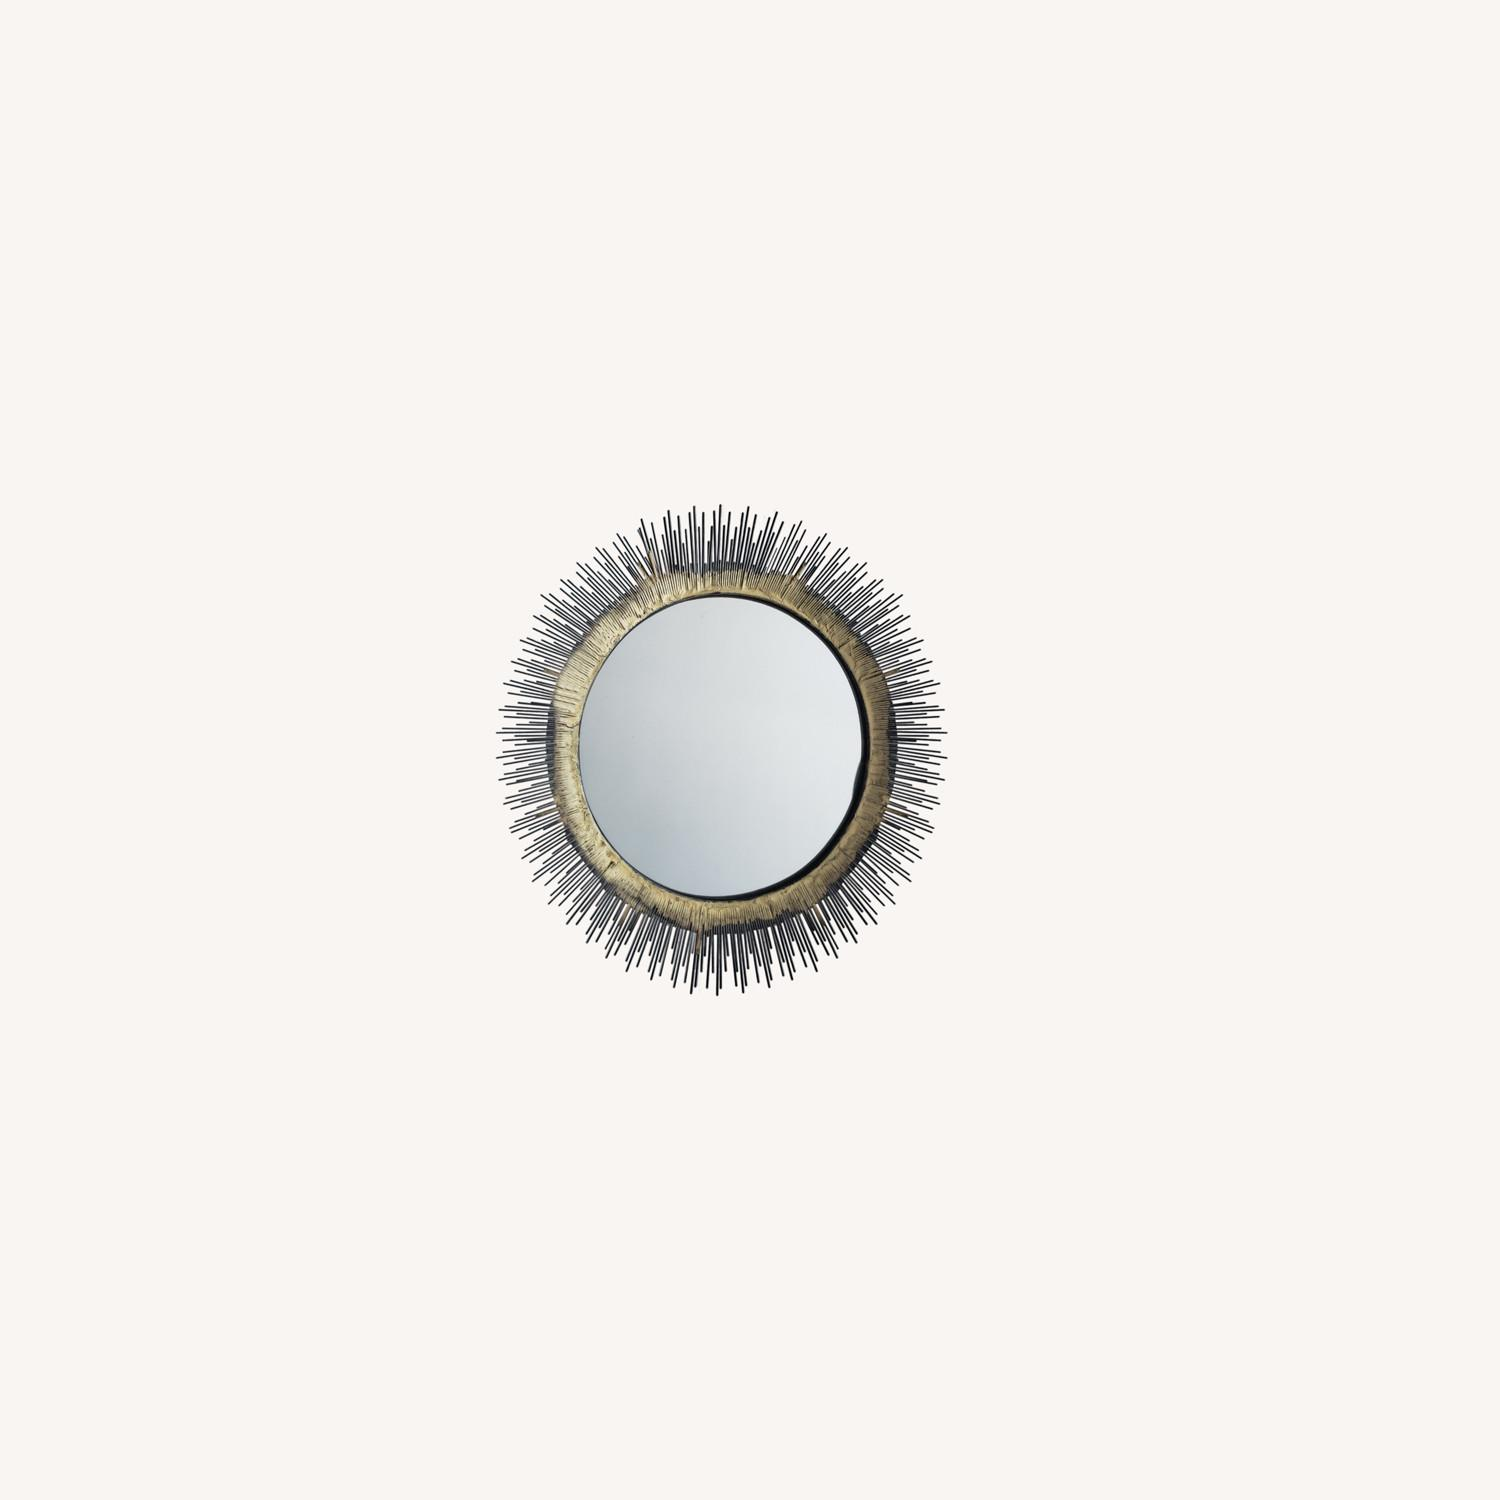 Crate and Barrel Brass Round Wall Mirror - image-0